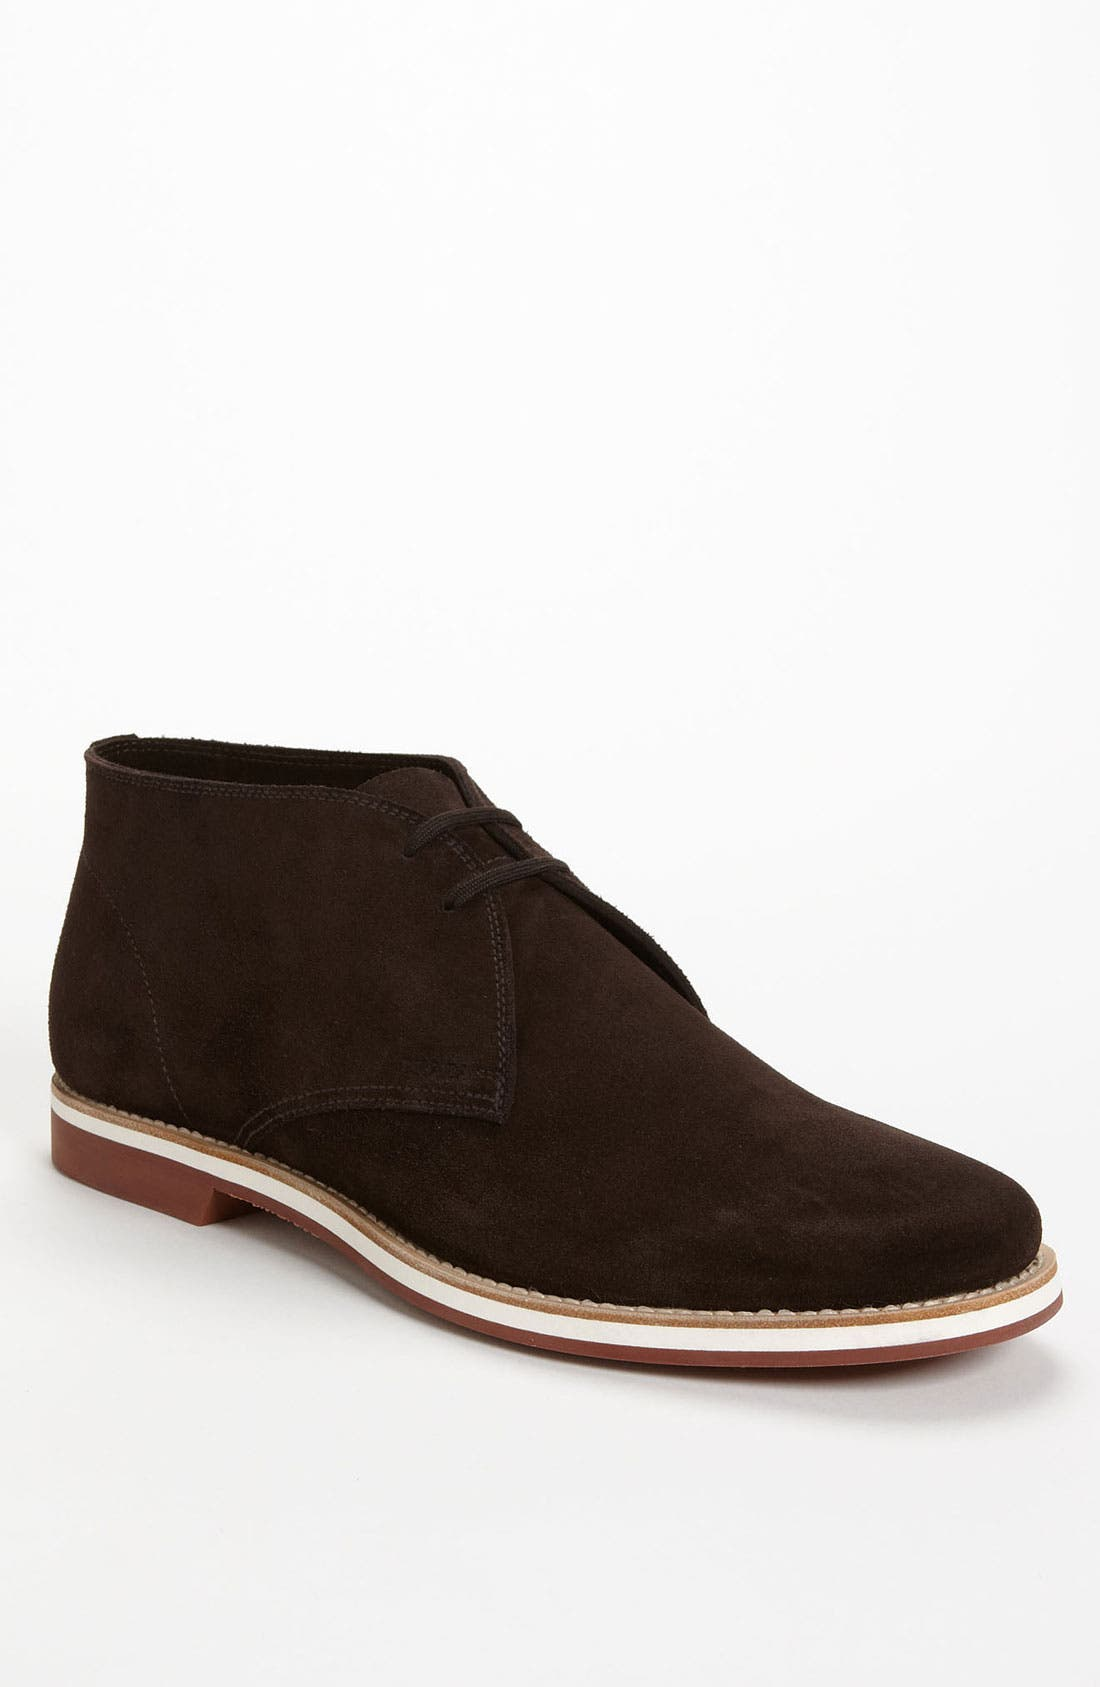 Main Image - Prada Suede Chukka Boot (Men)